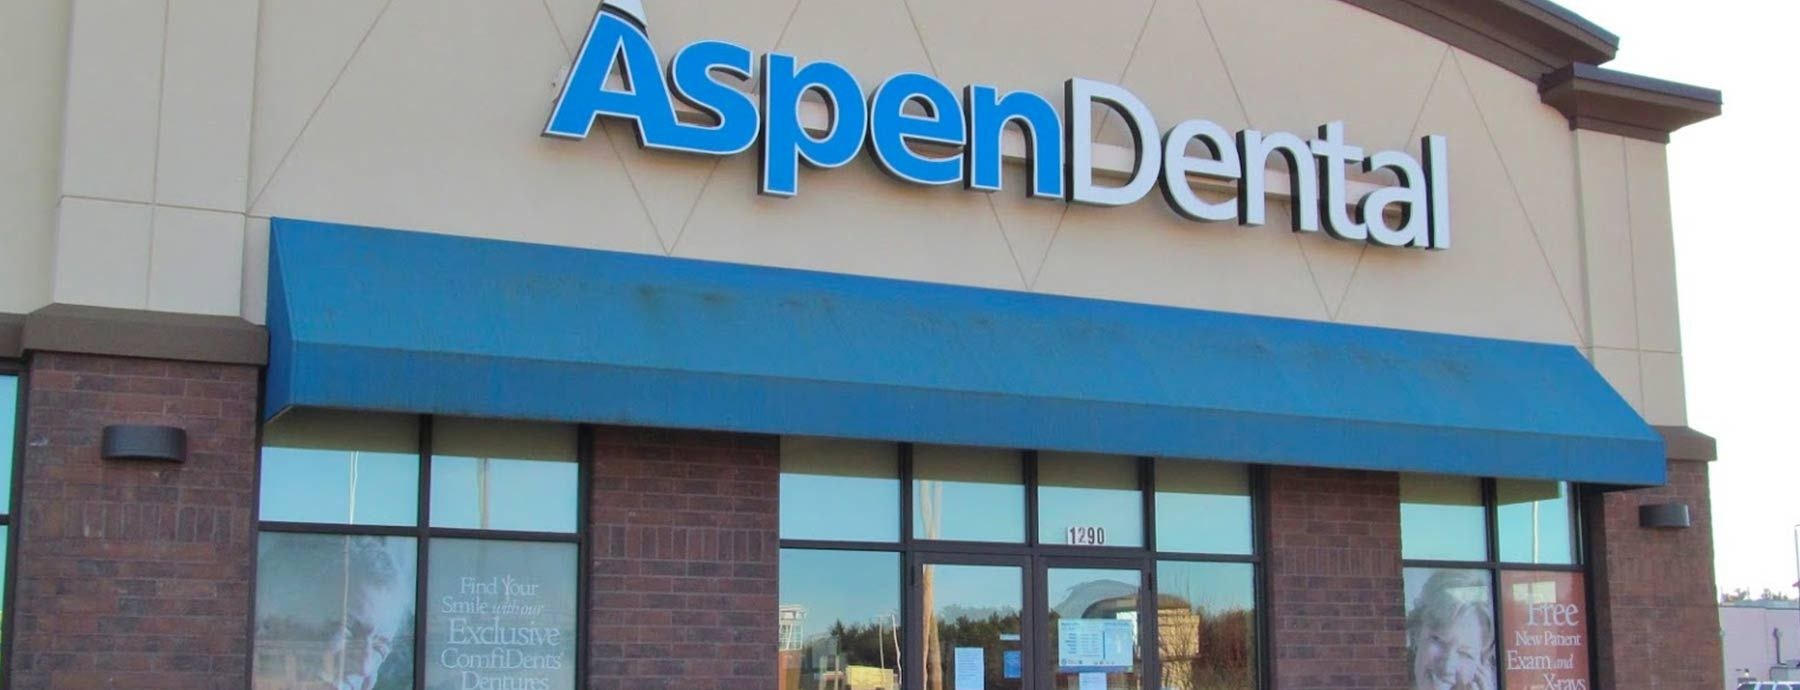 Commercial Property in Plover Wisconsin - Aspen Dental